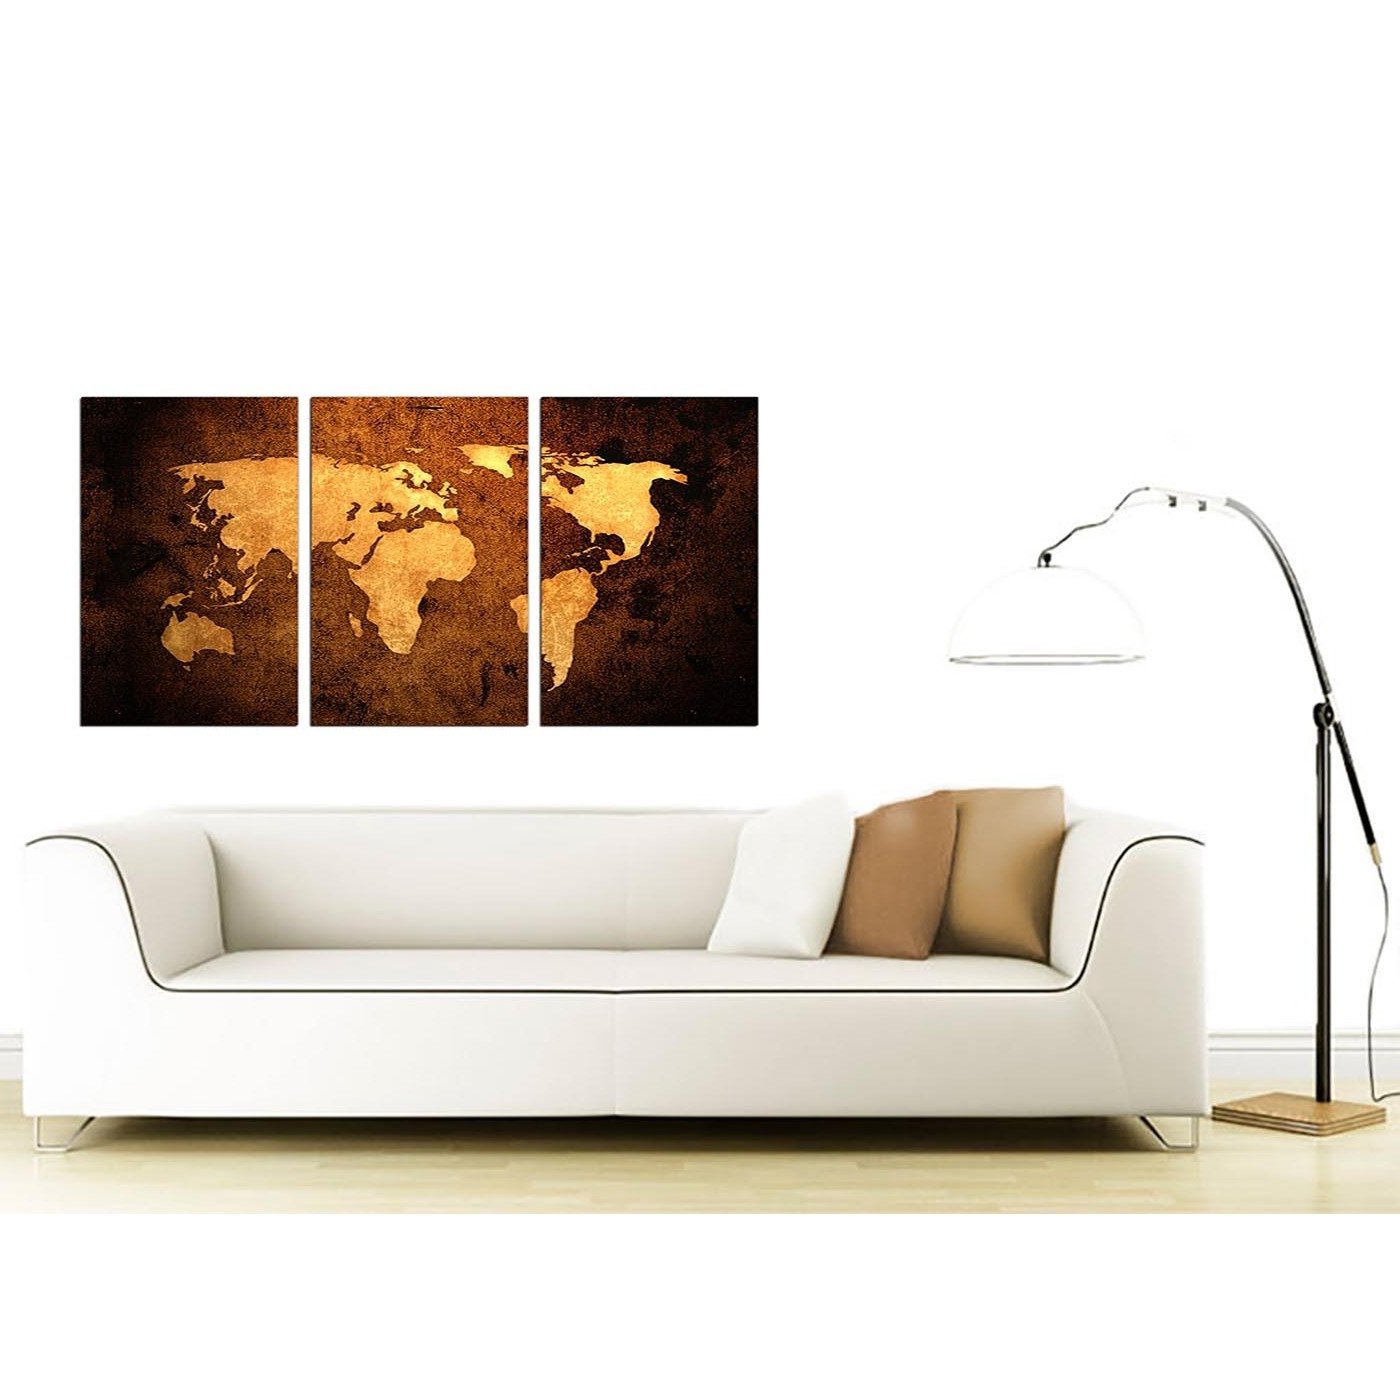 Favorite Wall Art In Vintage World Map Canvas Wall Art Set Of 3 For Your Bedroom (View 5 of 15)